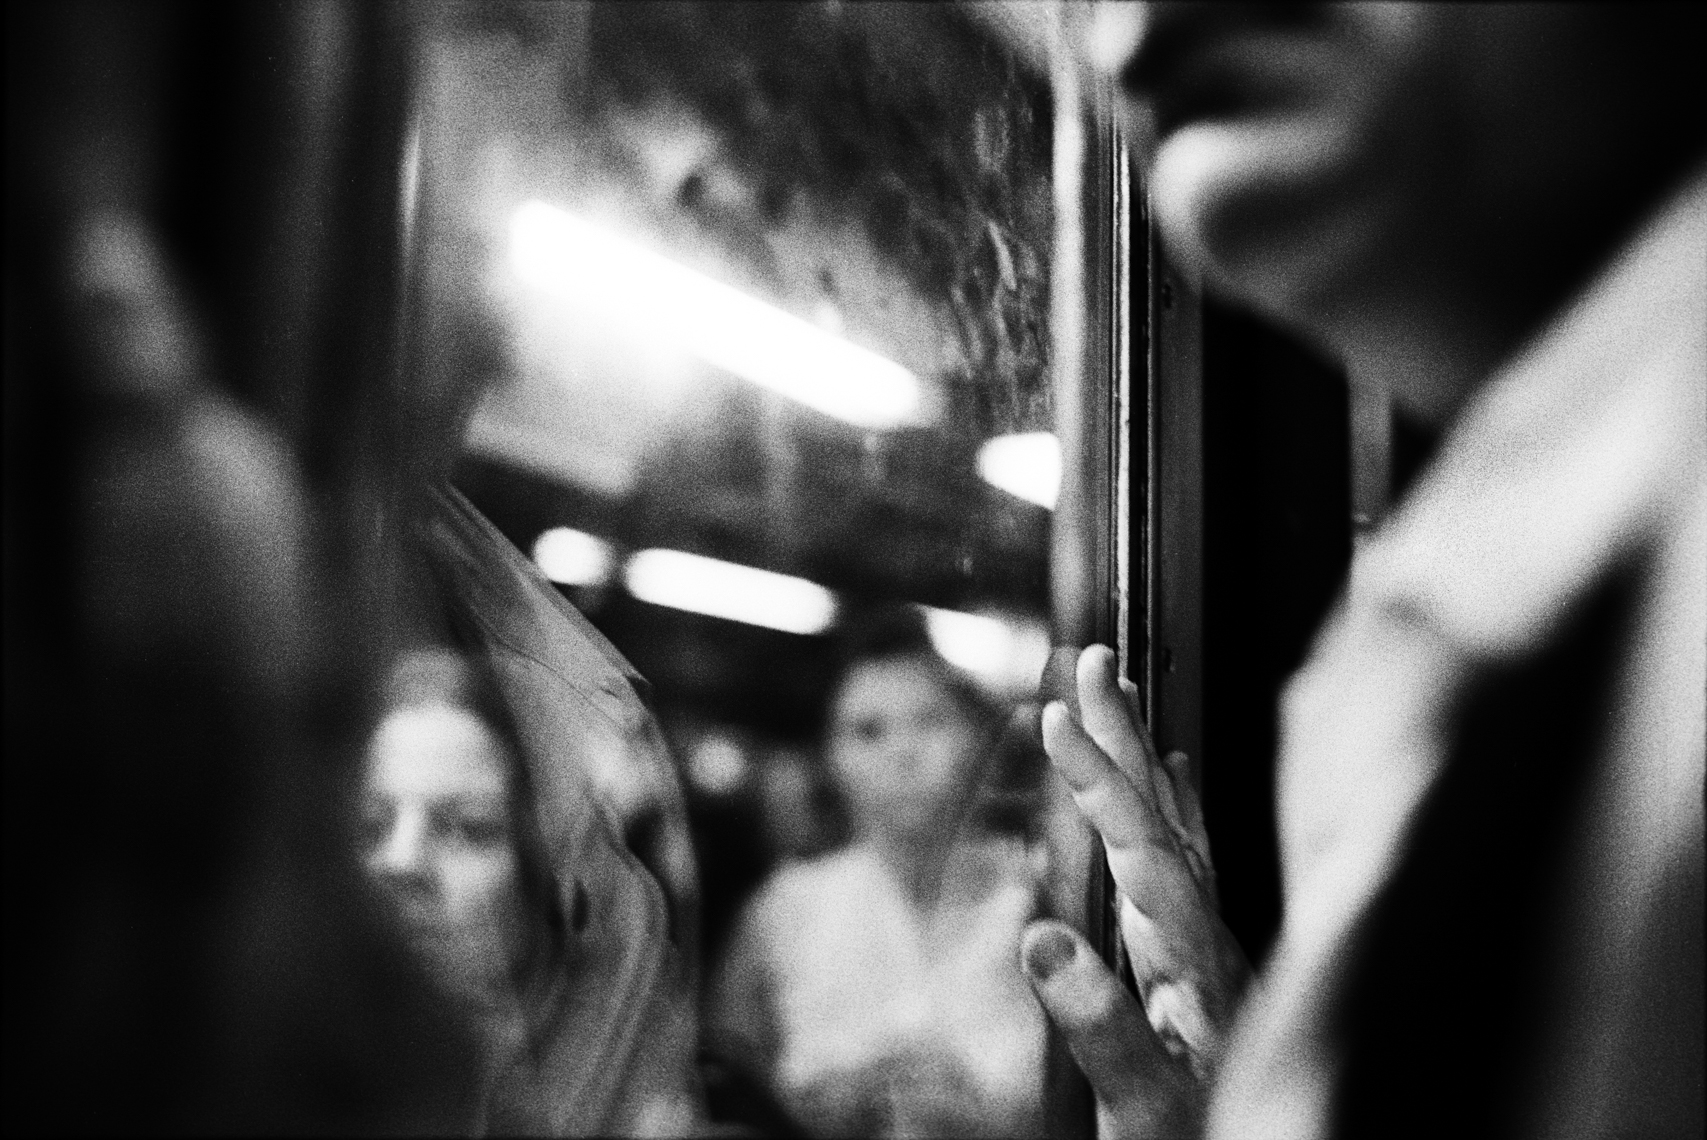 3-Train, Upper West, New York City, 2009 (from Dear New Yorker)